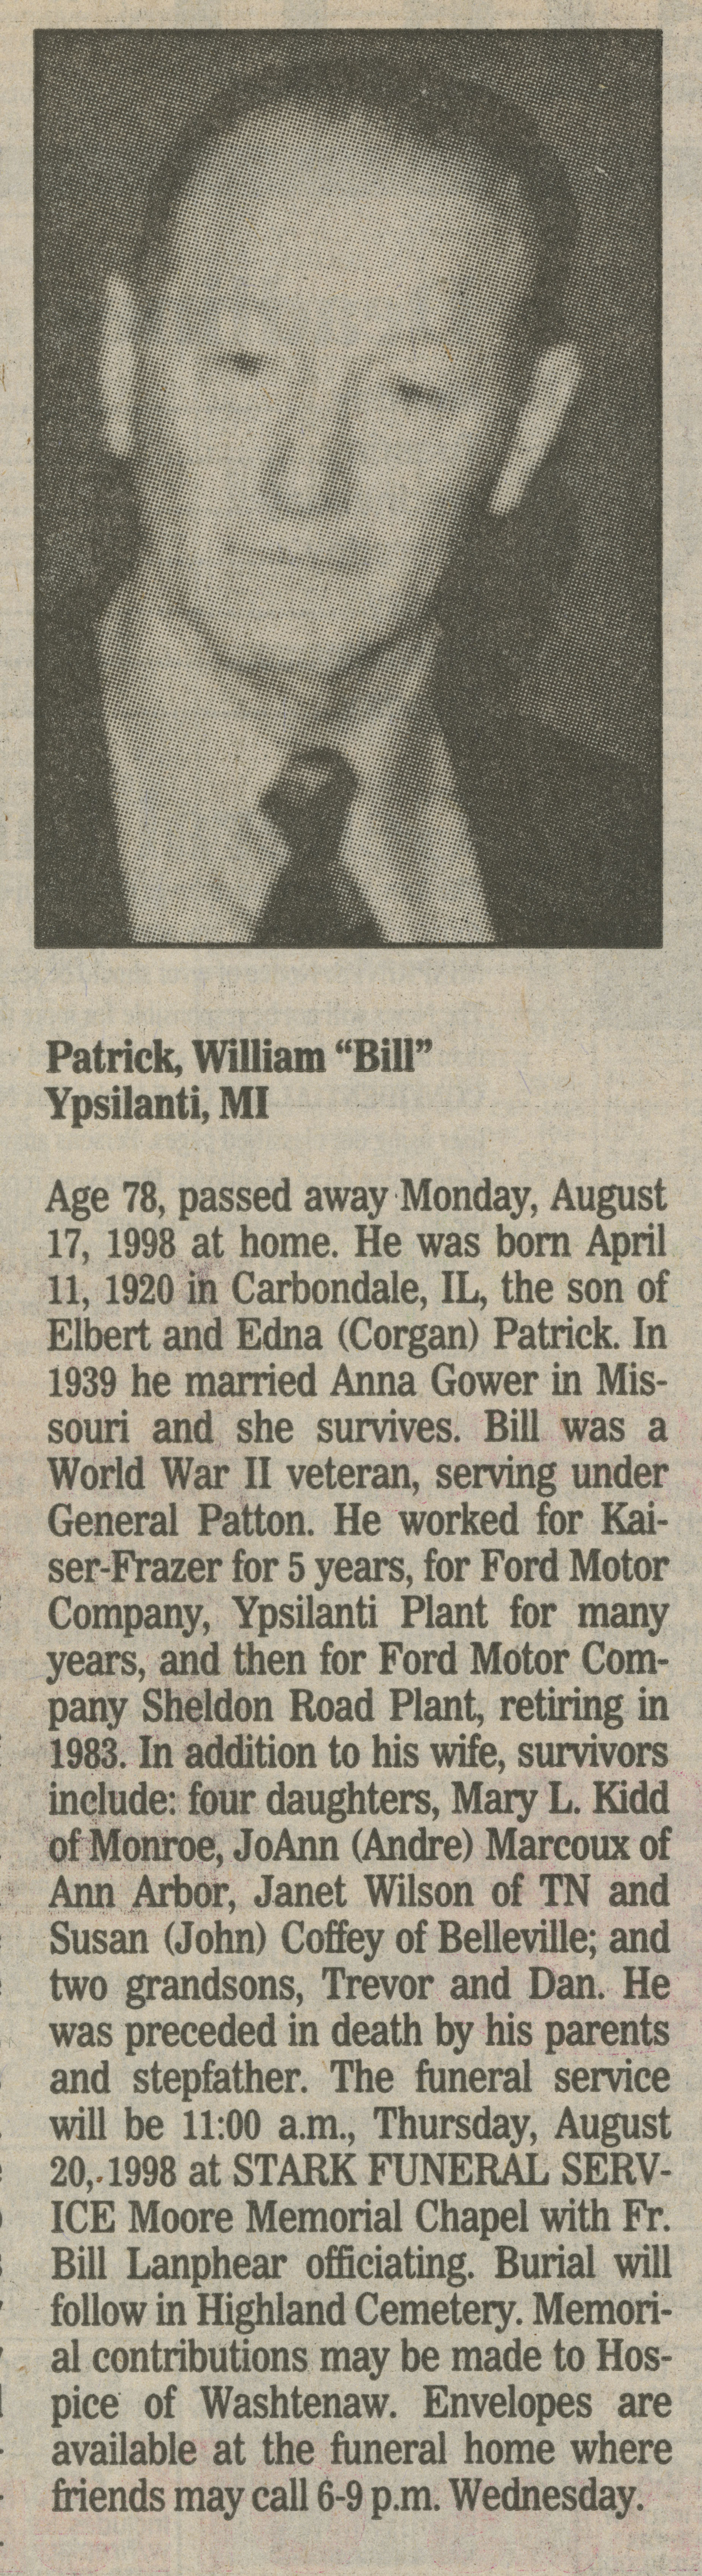 "William ""Bill"" Patrick image"